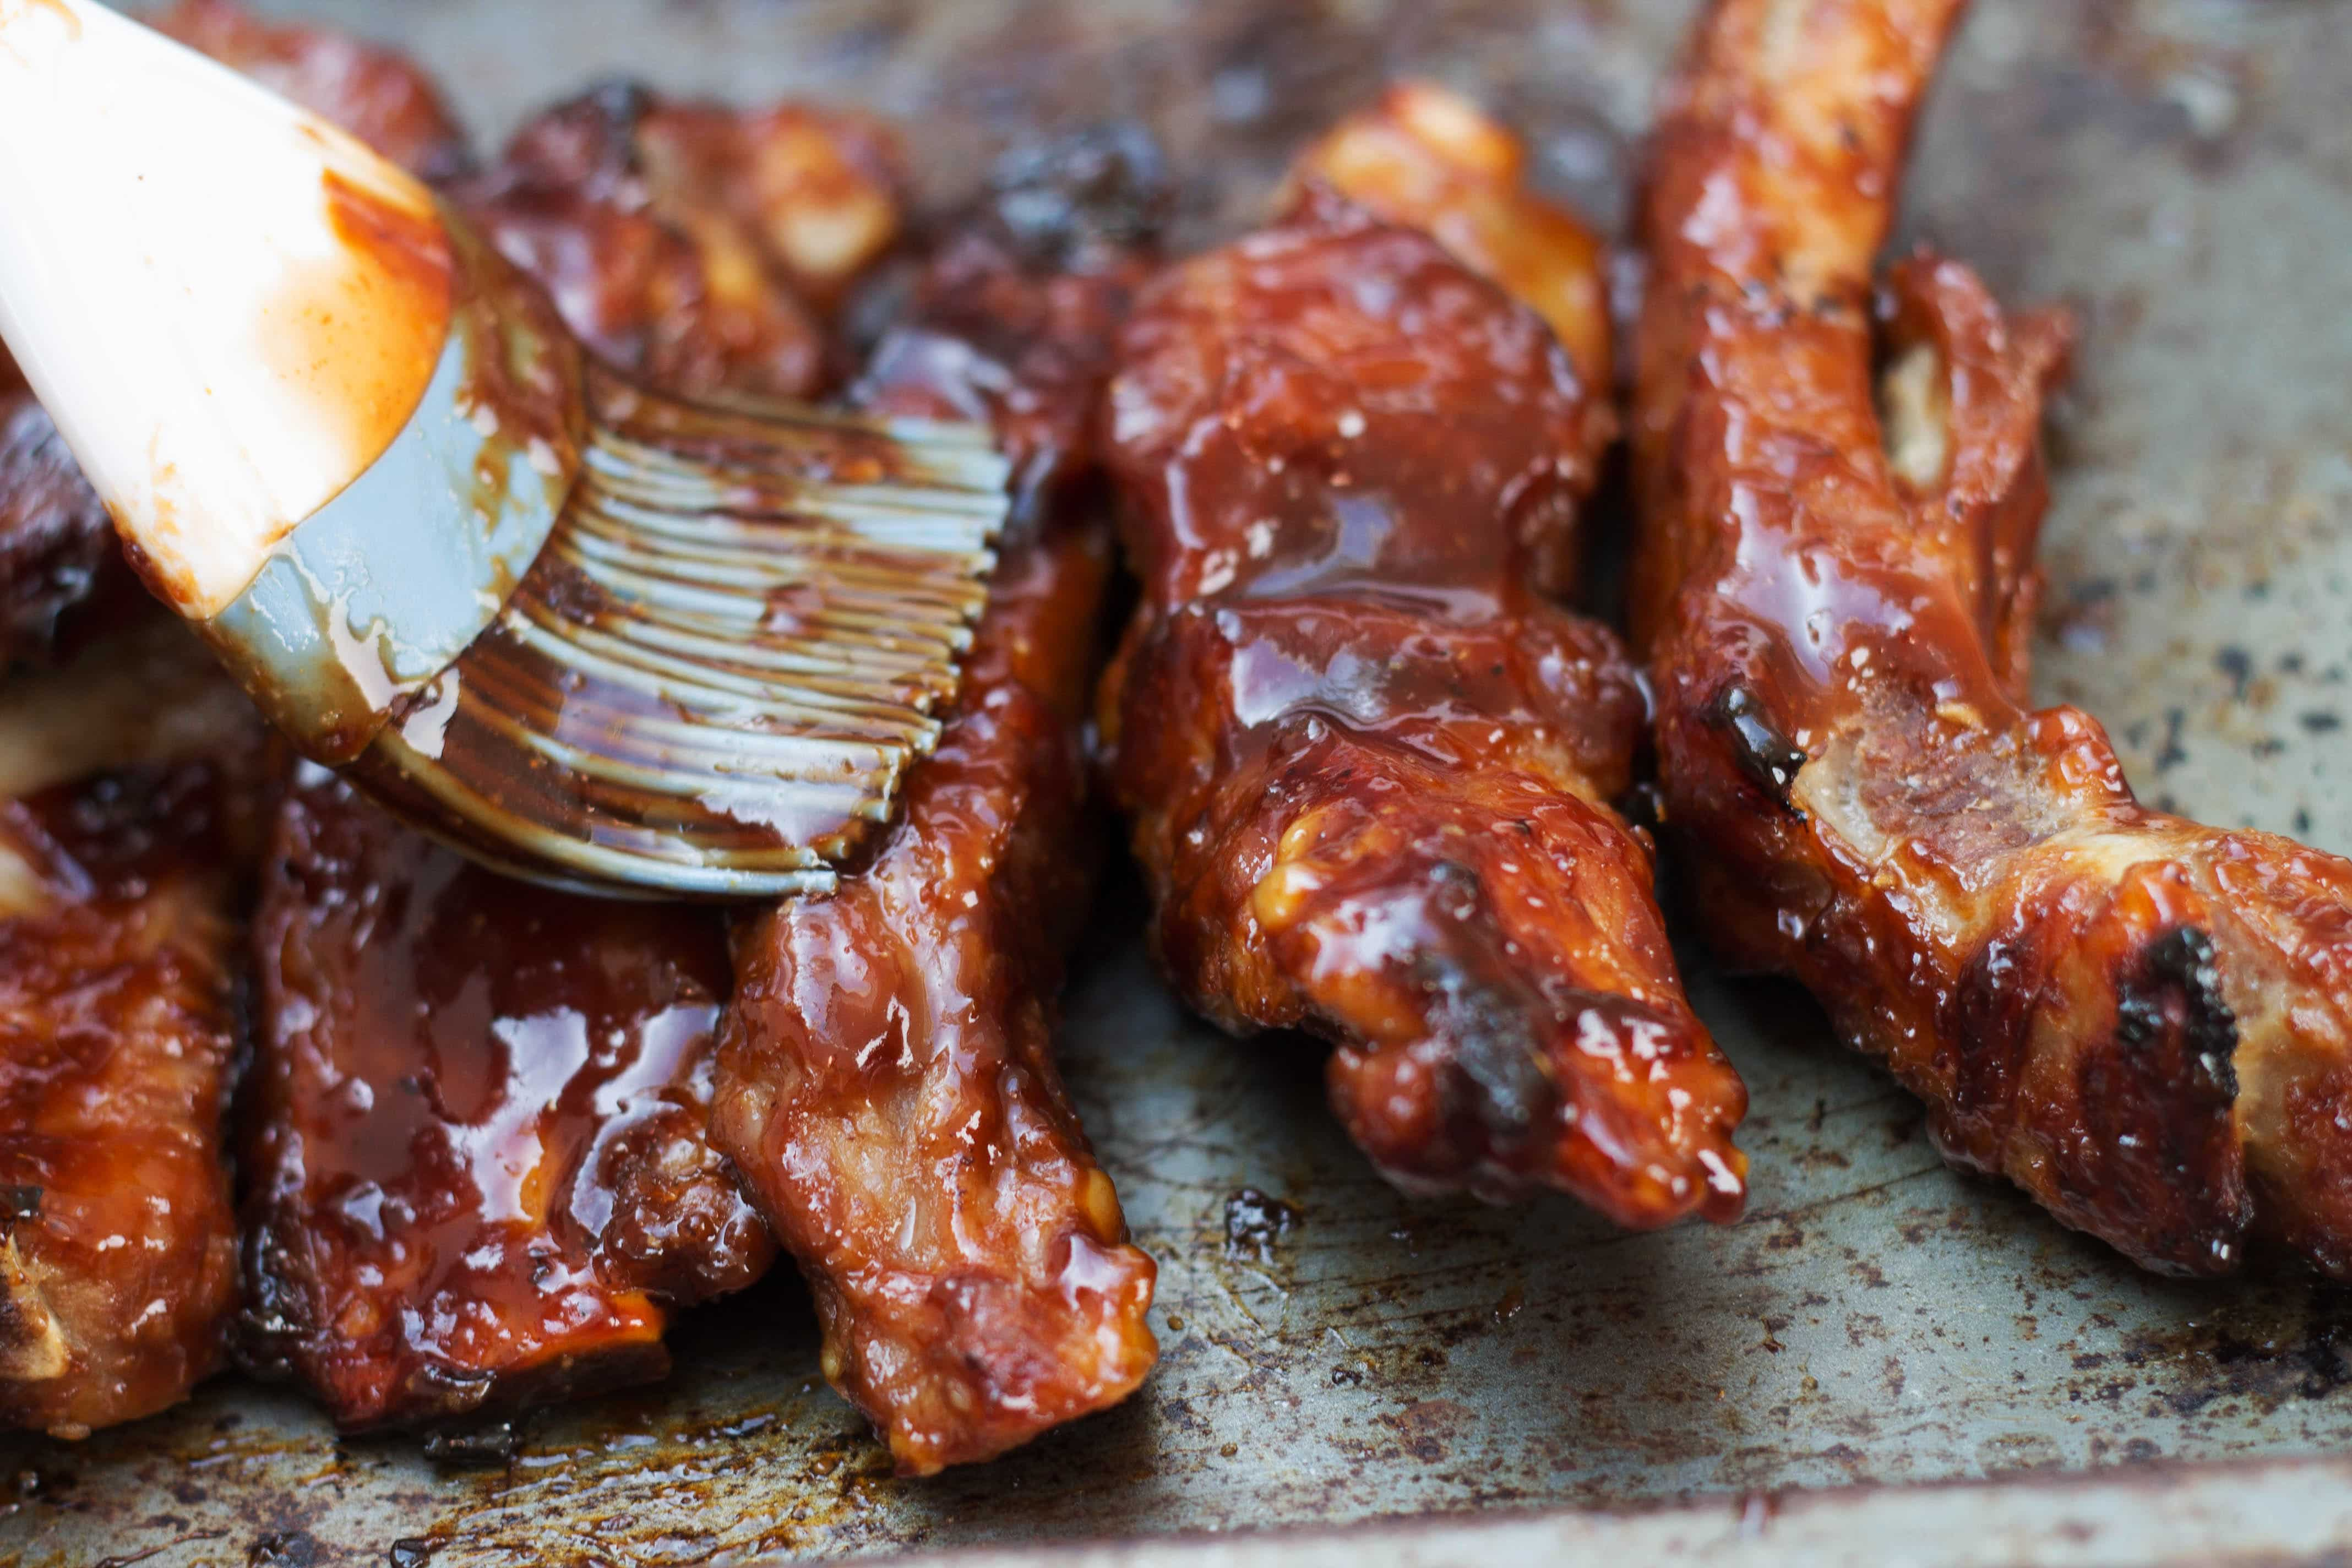 Barbecued sticky glazed ribs on a pan being brushed with sauce